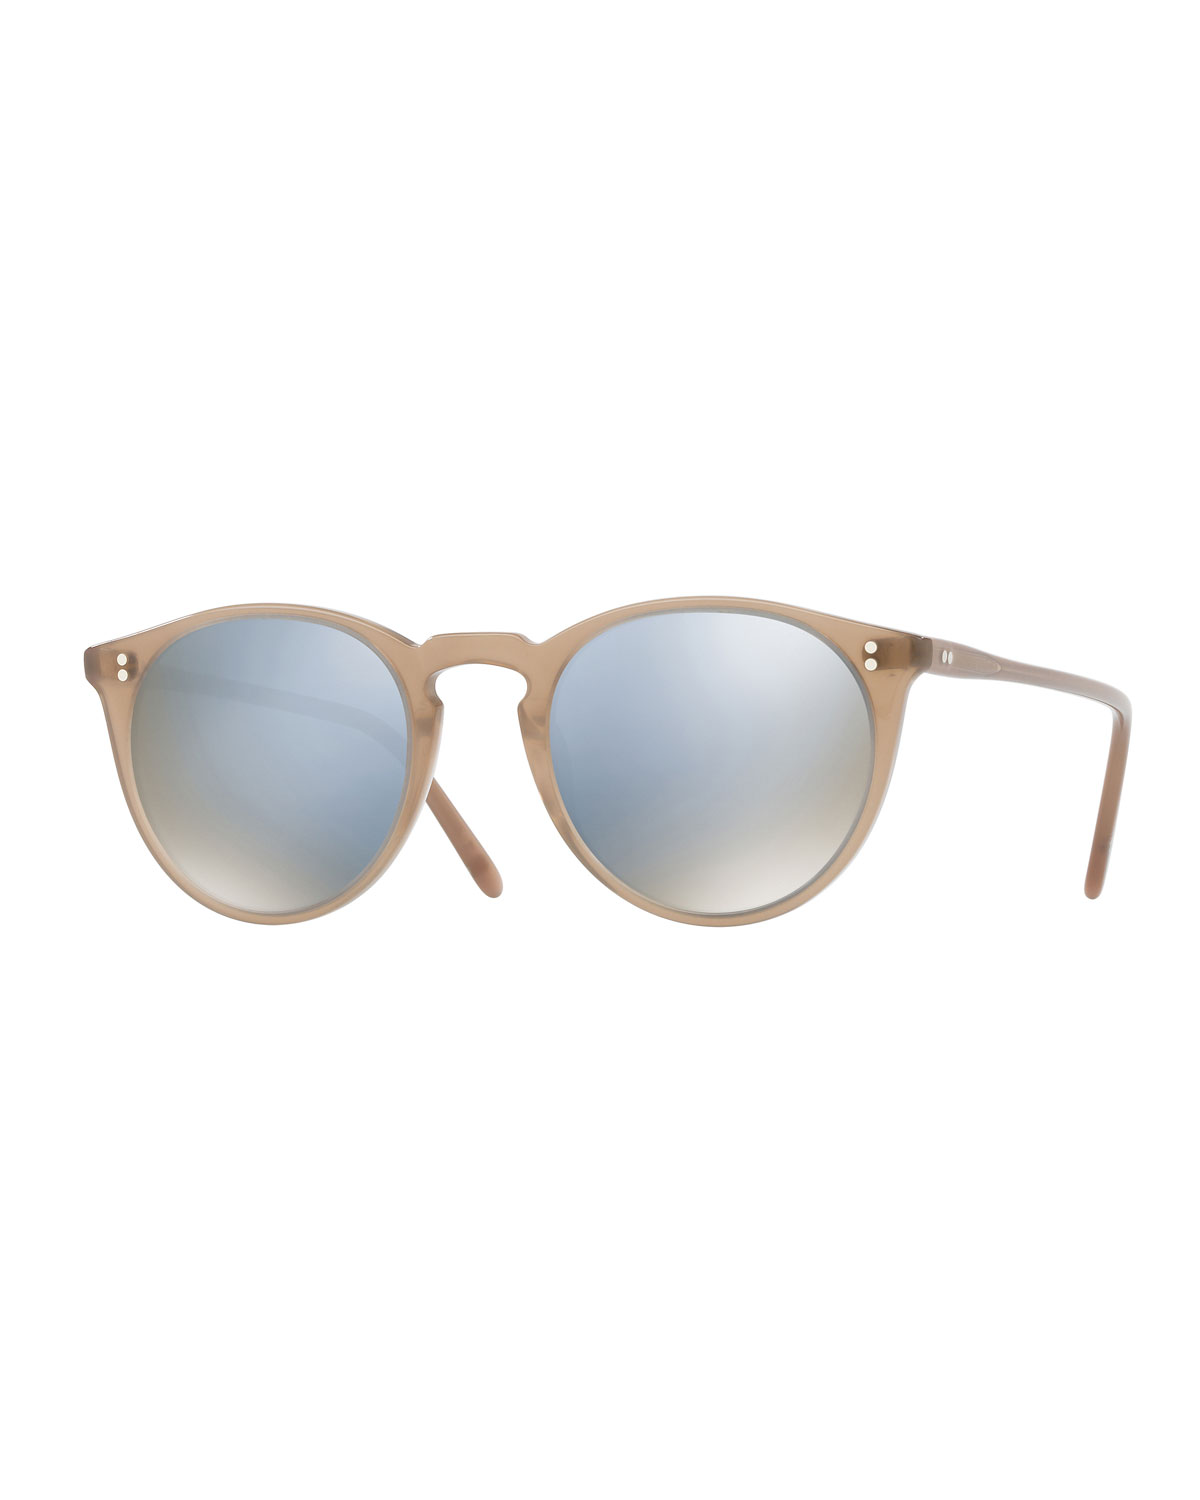 1e51cdaa1e9 Oliver Peoples O Malley NYC Peaked Round Mirrored Sunglasses ...